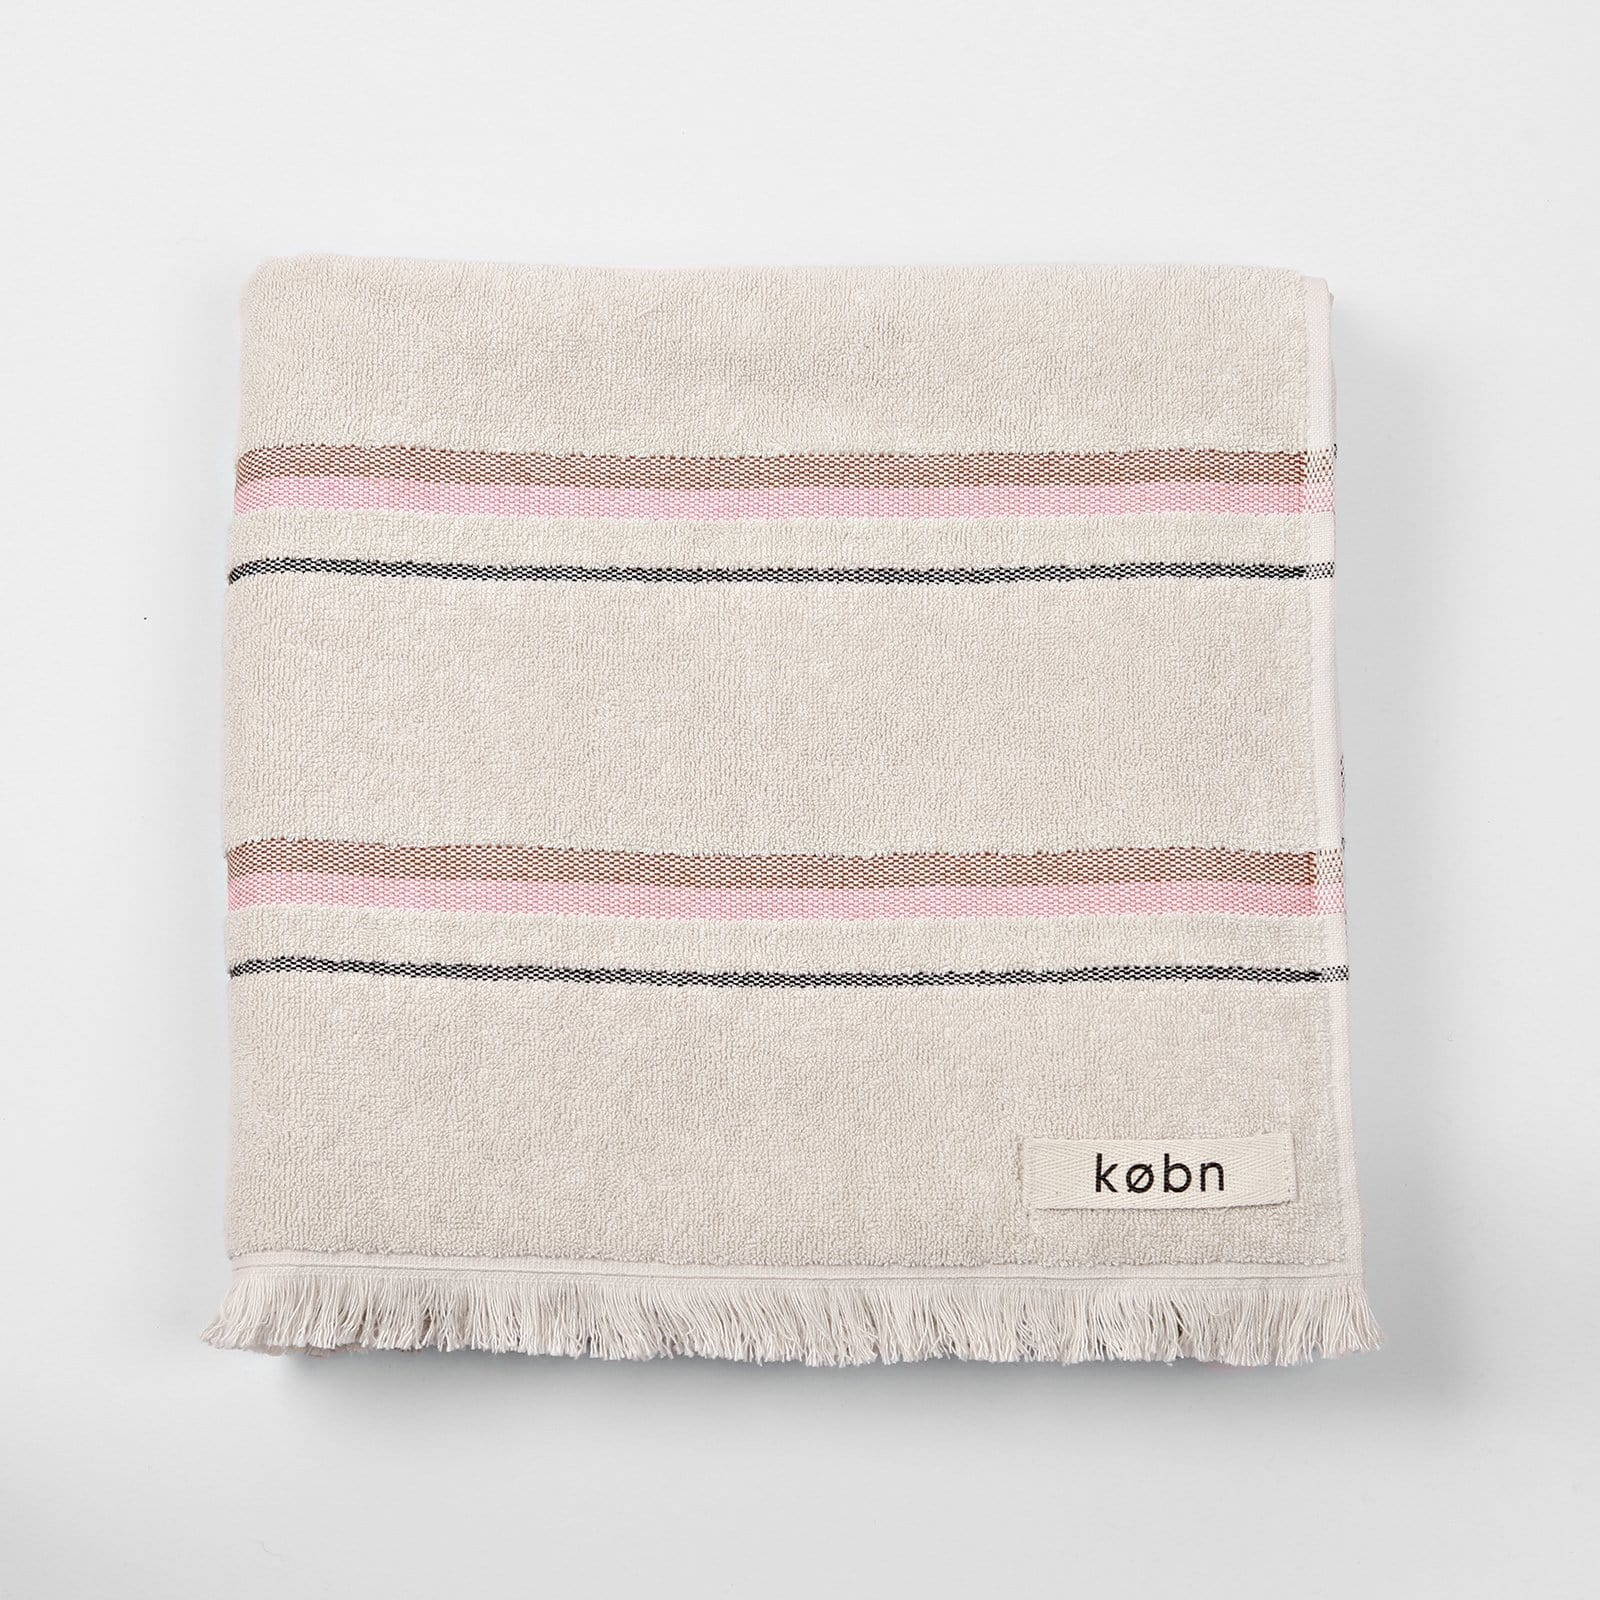 Købn Sand Towel-Bathroom-kobn-Greenhouse Interiors